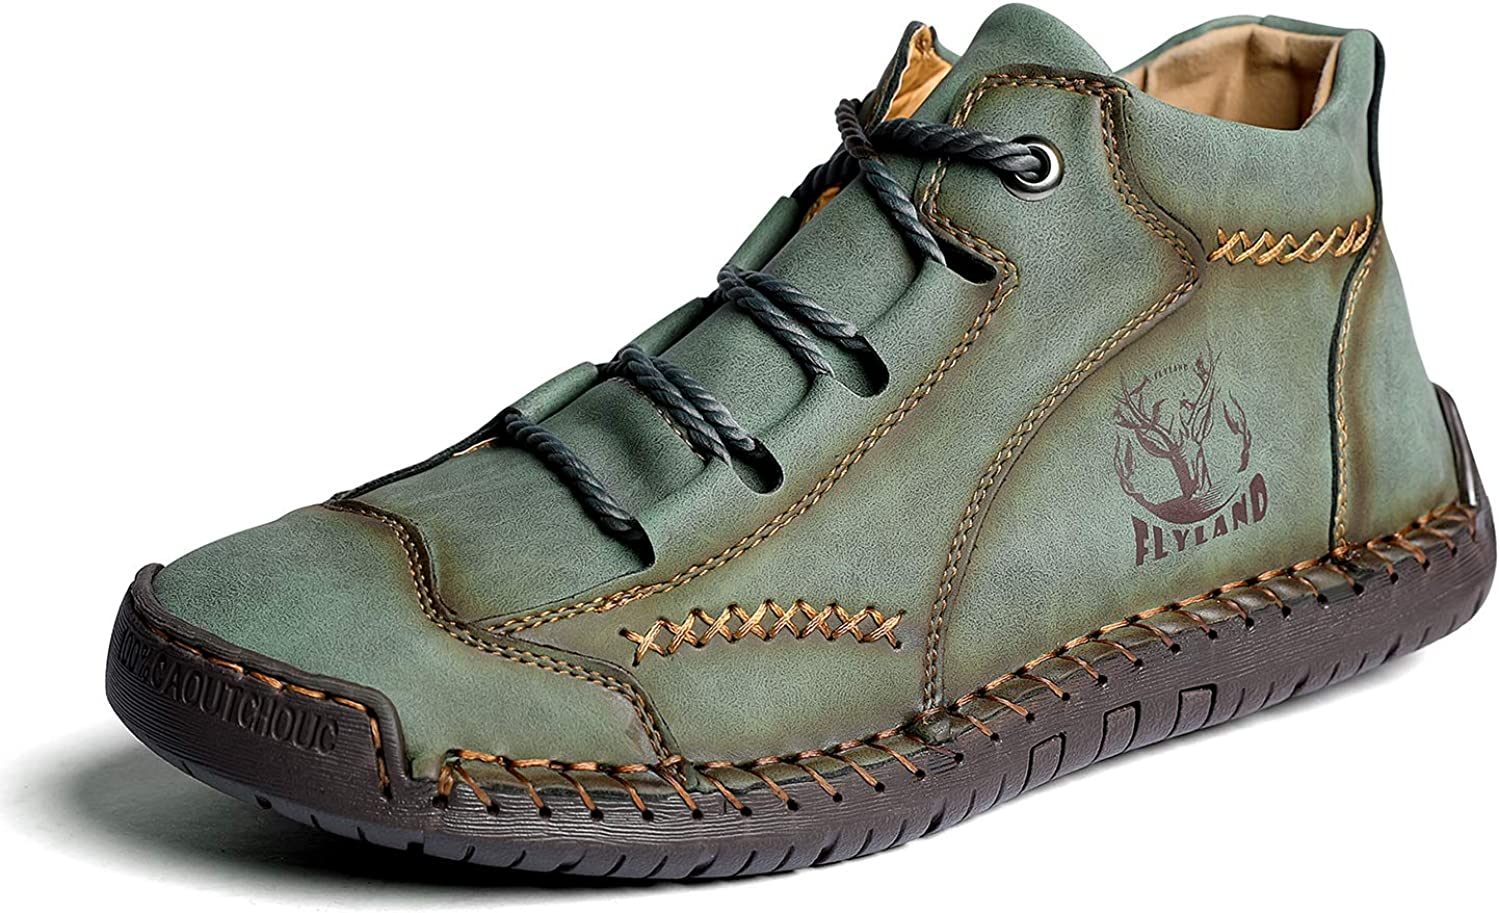 FLYLAND Max 88% OFFicial site OFF mens Boots Chukka